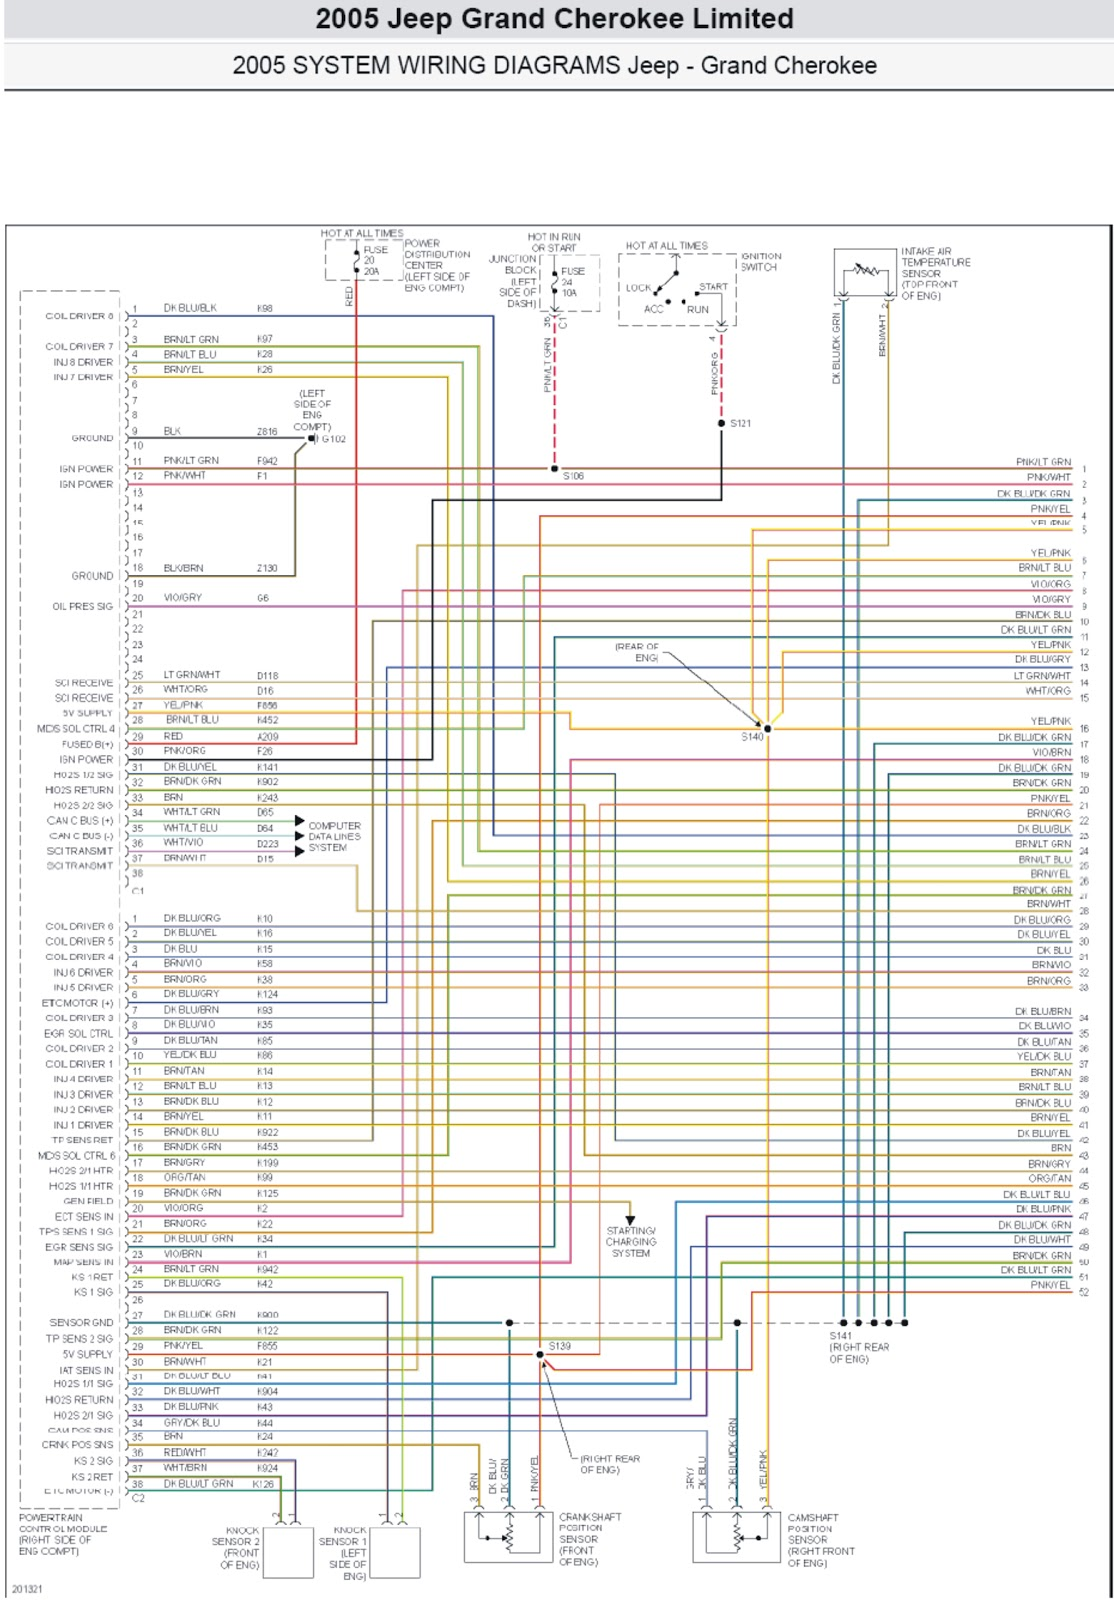 2005 Jeep Grand Cherokee System Wiring Diagrams Series